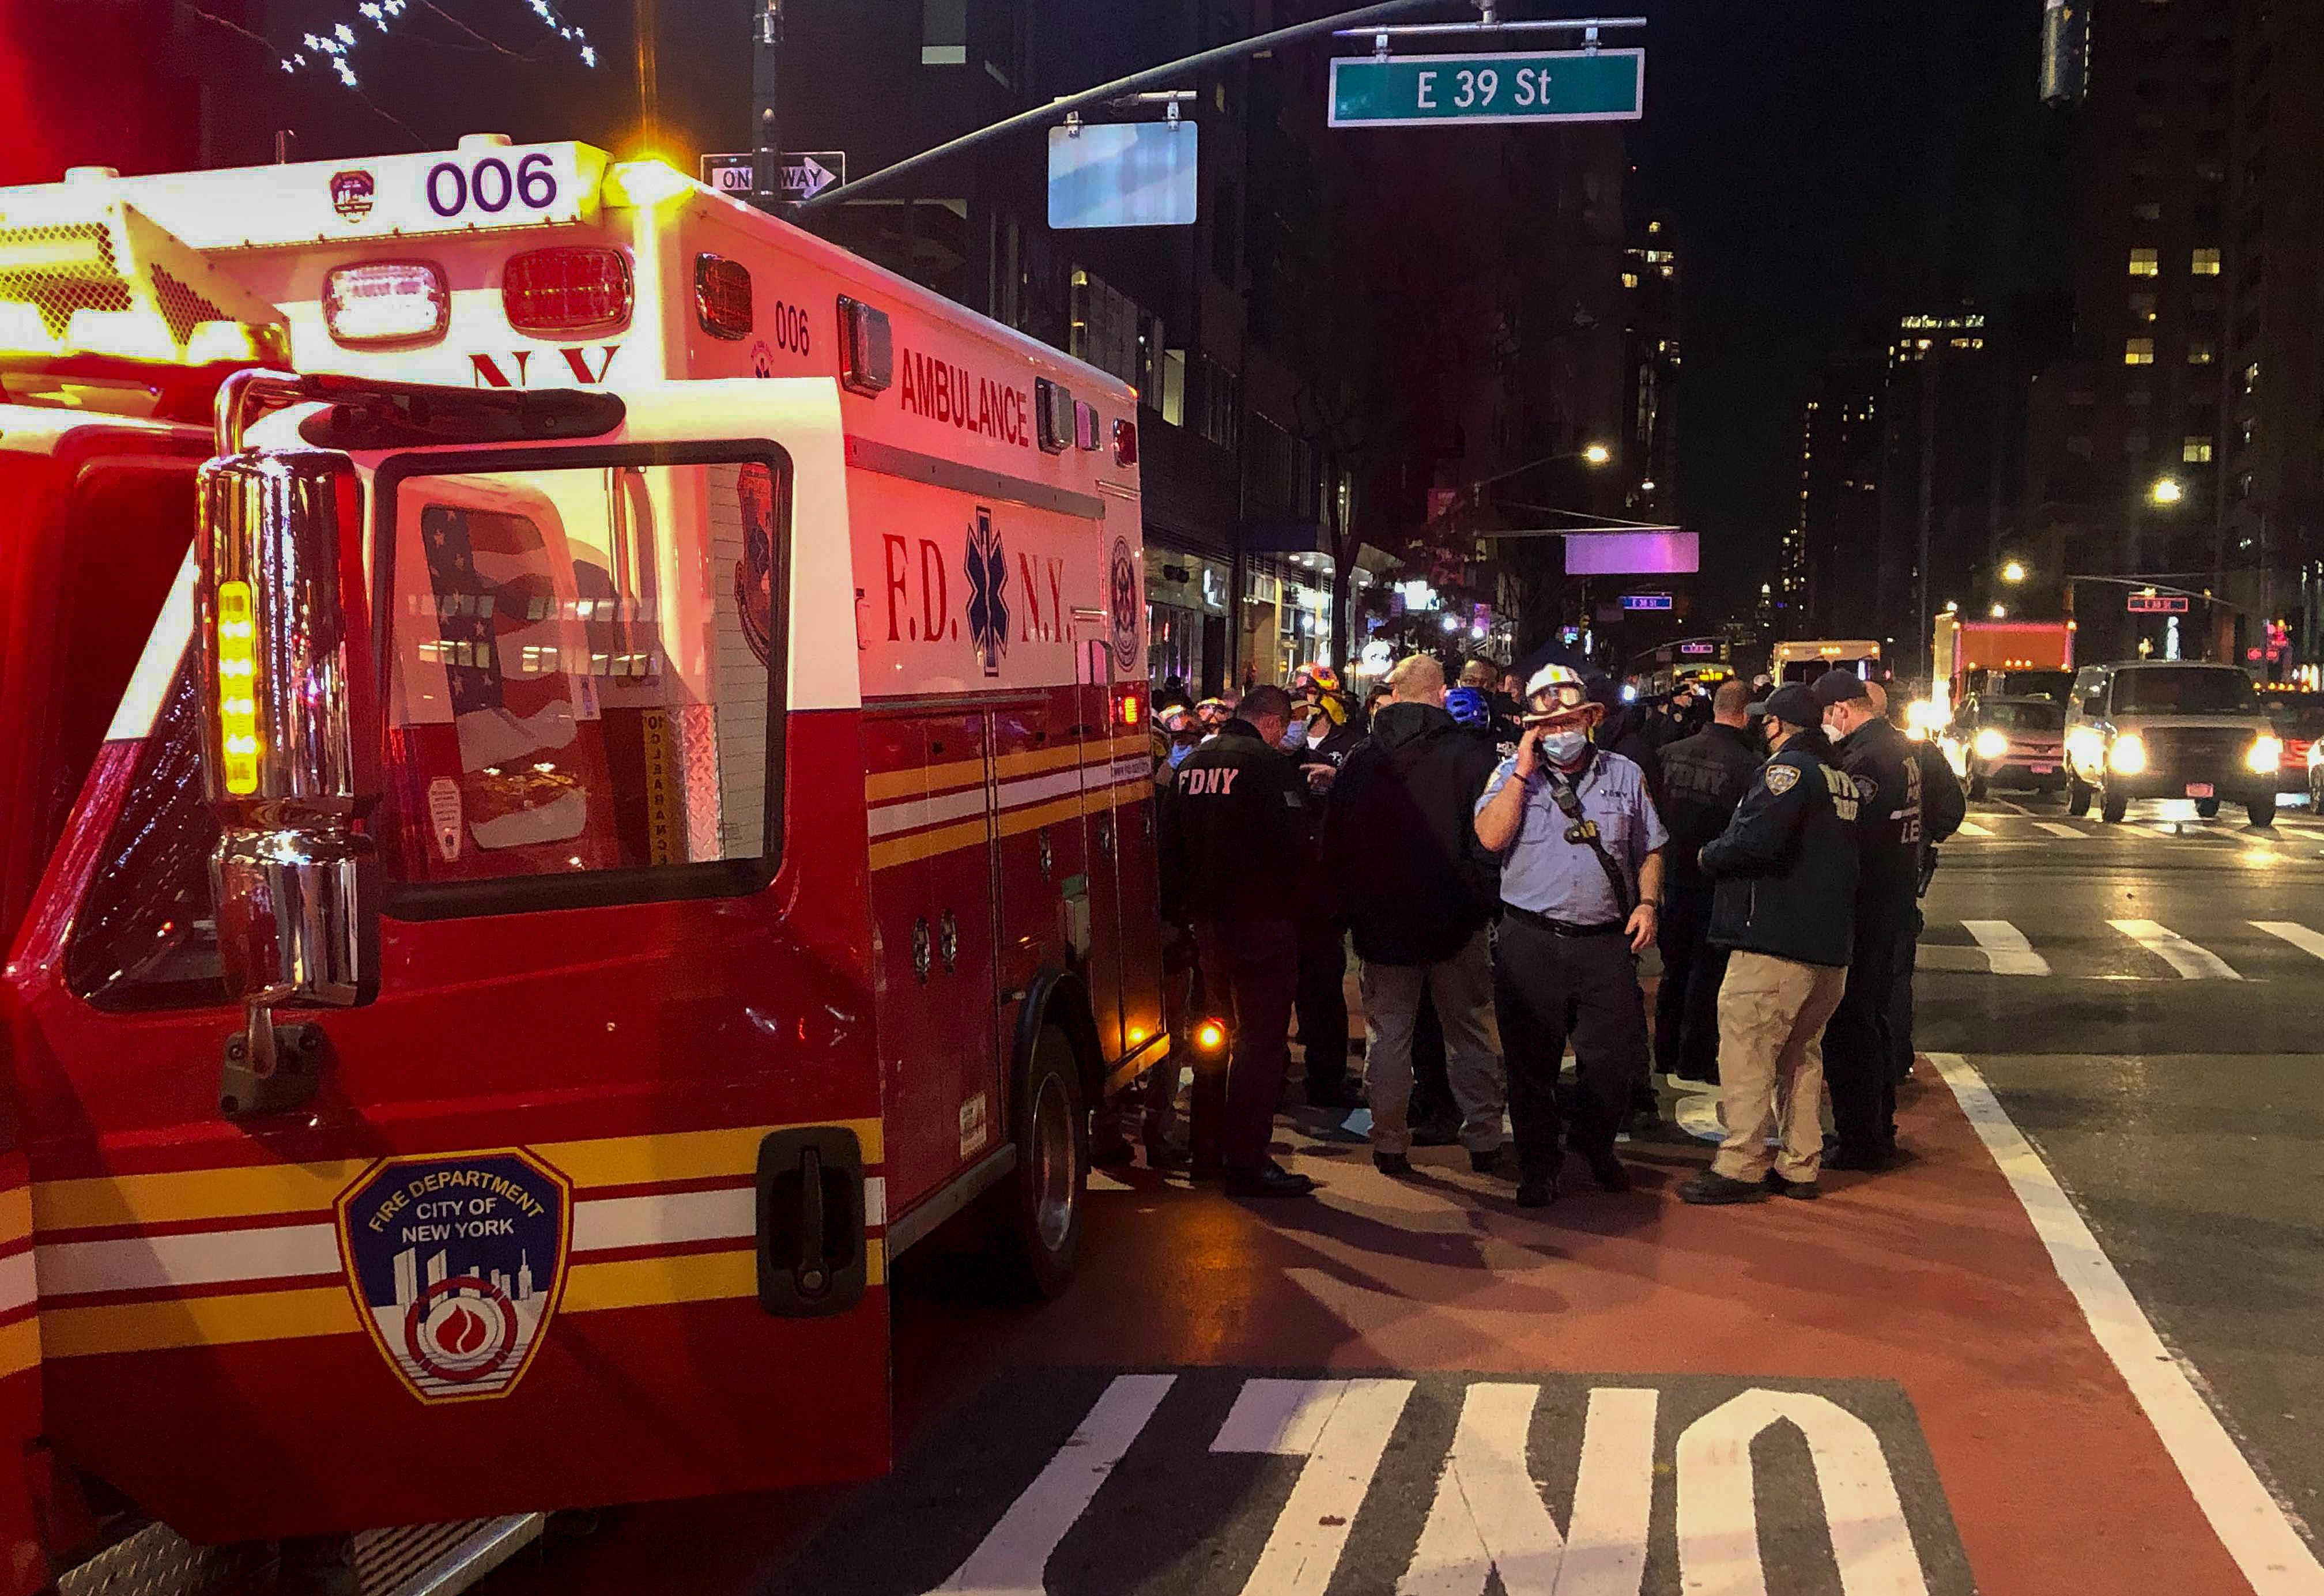 I see bodies flying : Protesters in New York City struck by car; 6 injured